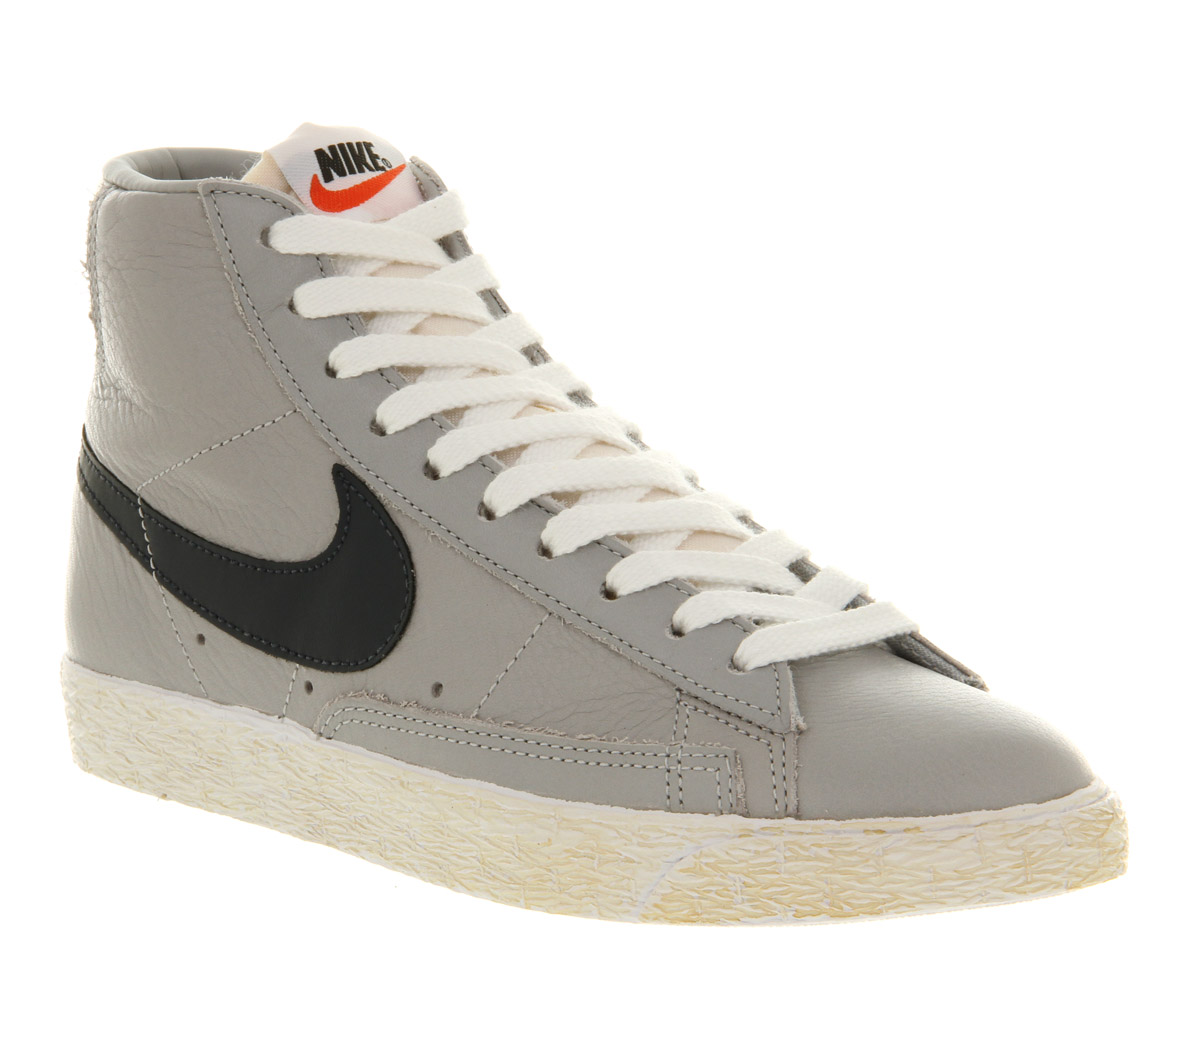 buy popular 6131d d5ebf Nike Gray Blazer Mid Vintage Leather Wolf Grey Obsidian Blue Exclusive for  men